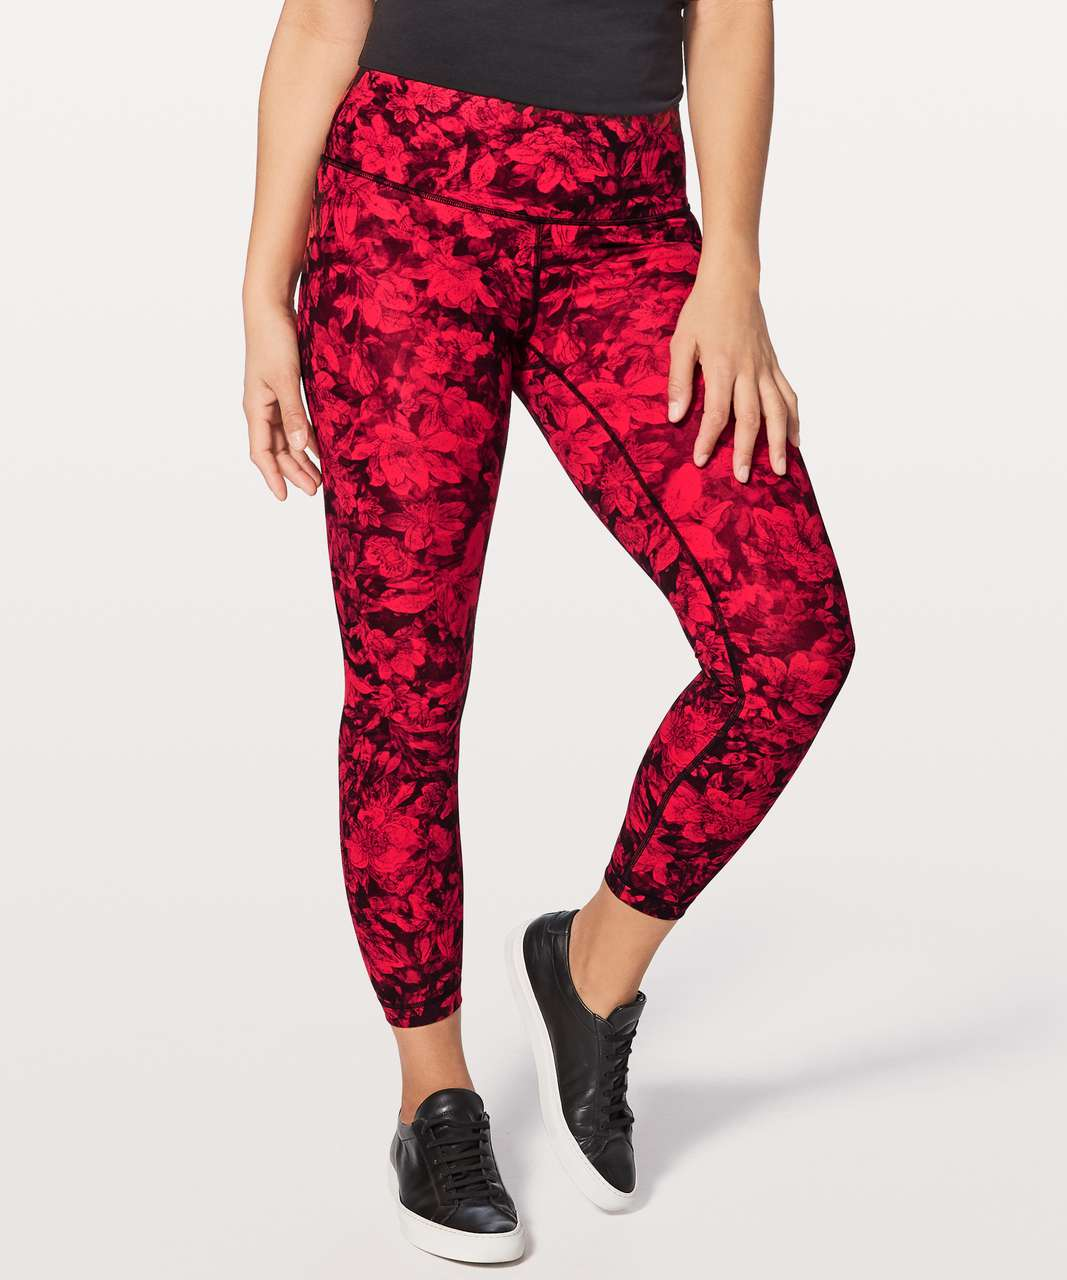 "Lululemon Wunder Under Hi-Rise 7/8 Tight 25"" - Carminetrue Red Black"